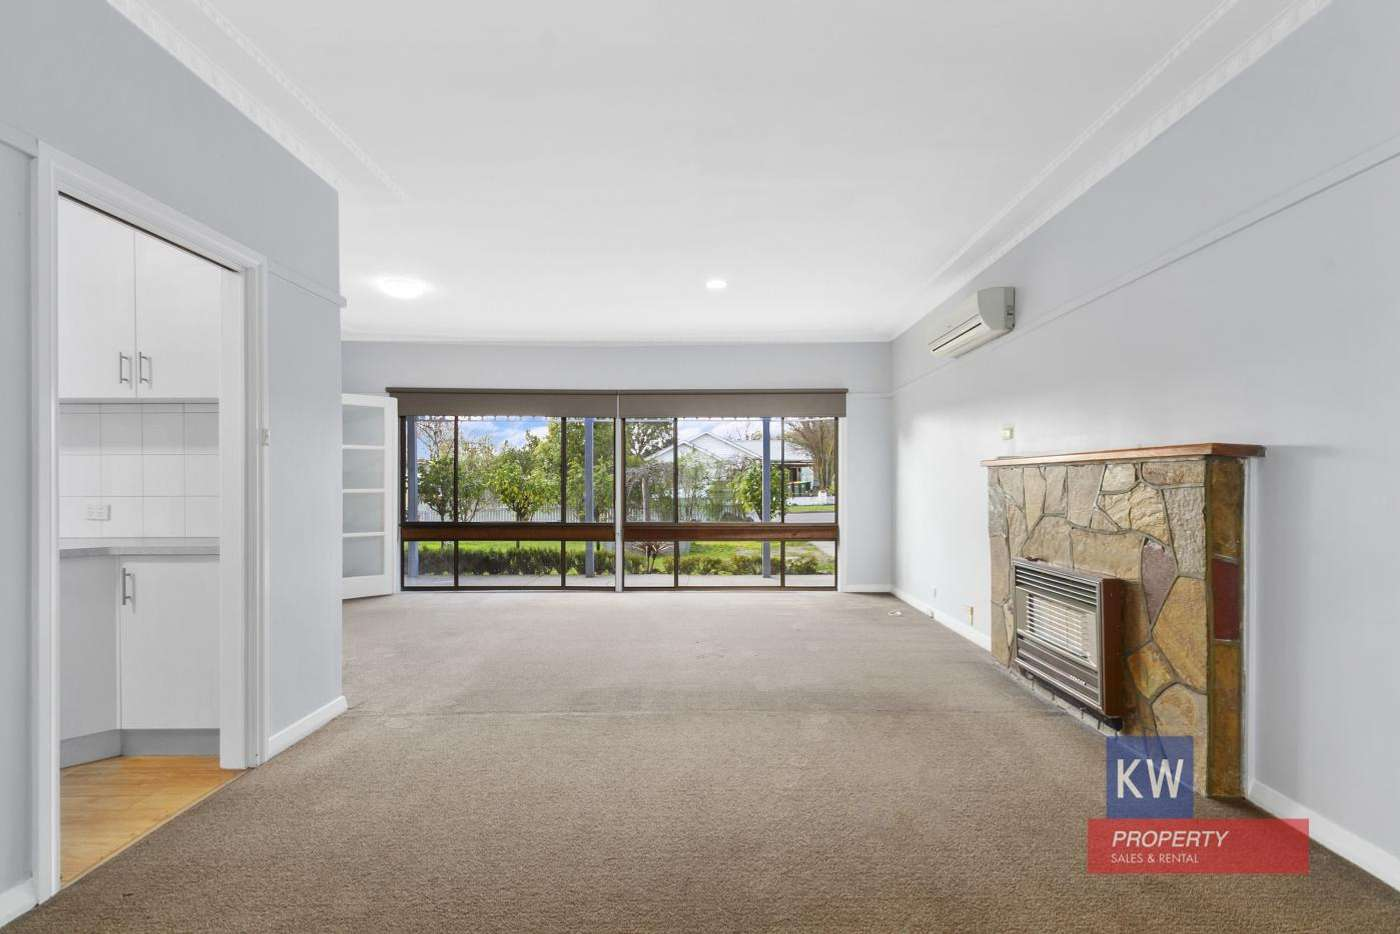 Seventh view of Homely house listing, 39 Langford Street, Morwell VIC 3840